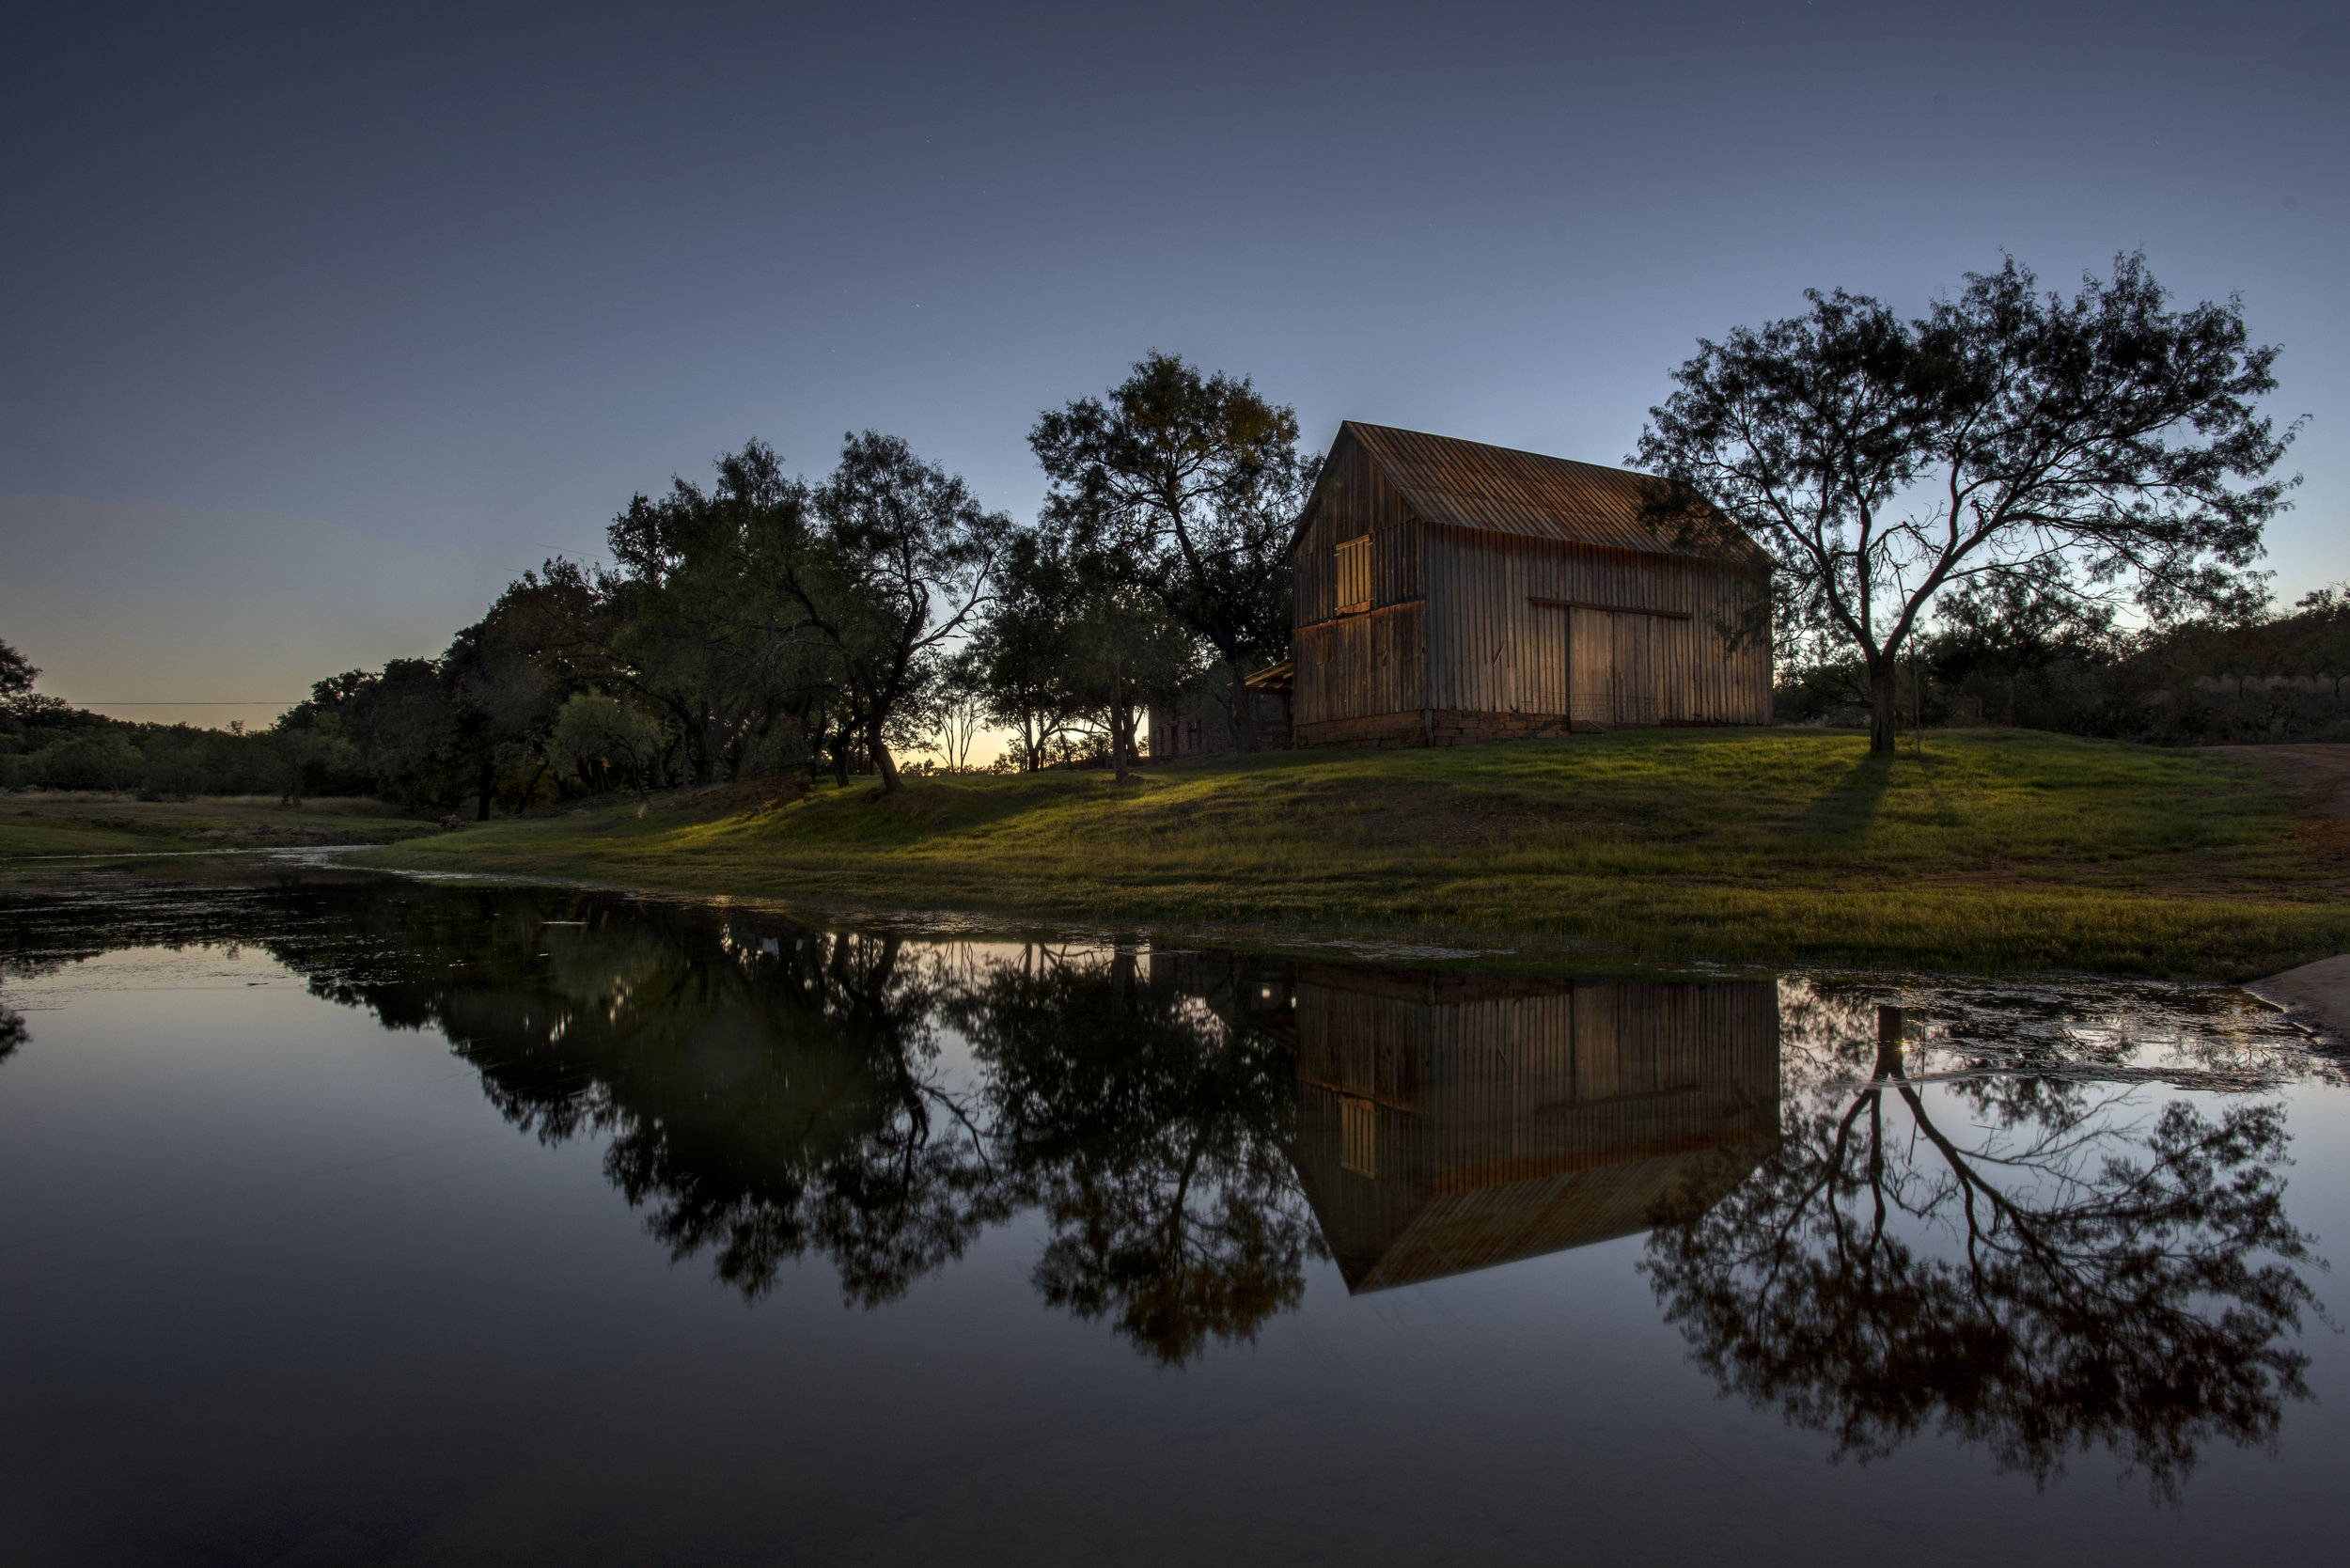 fredericksburg-realty-ranch-listing-hill-country-real-estate.jpg